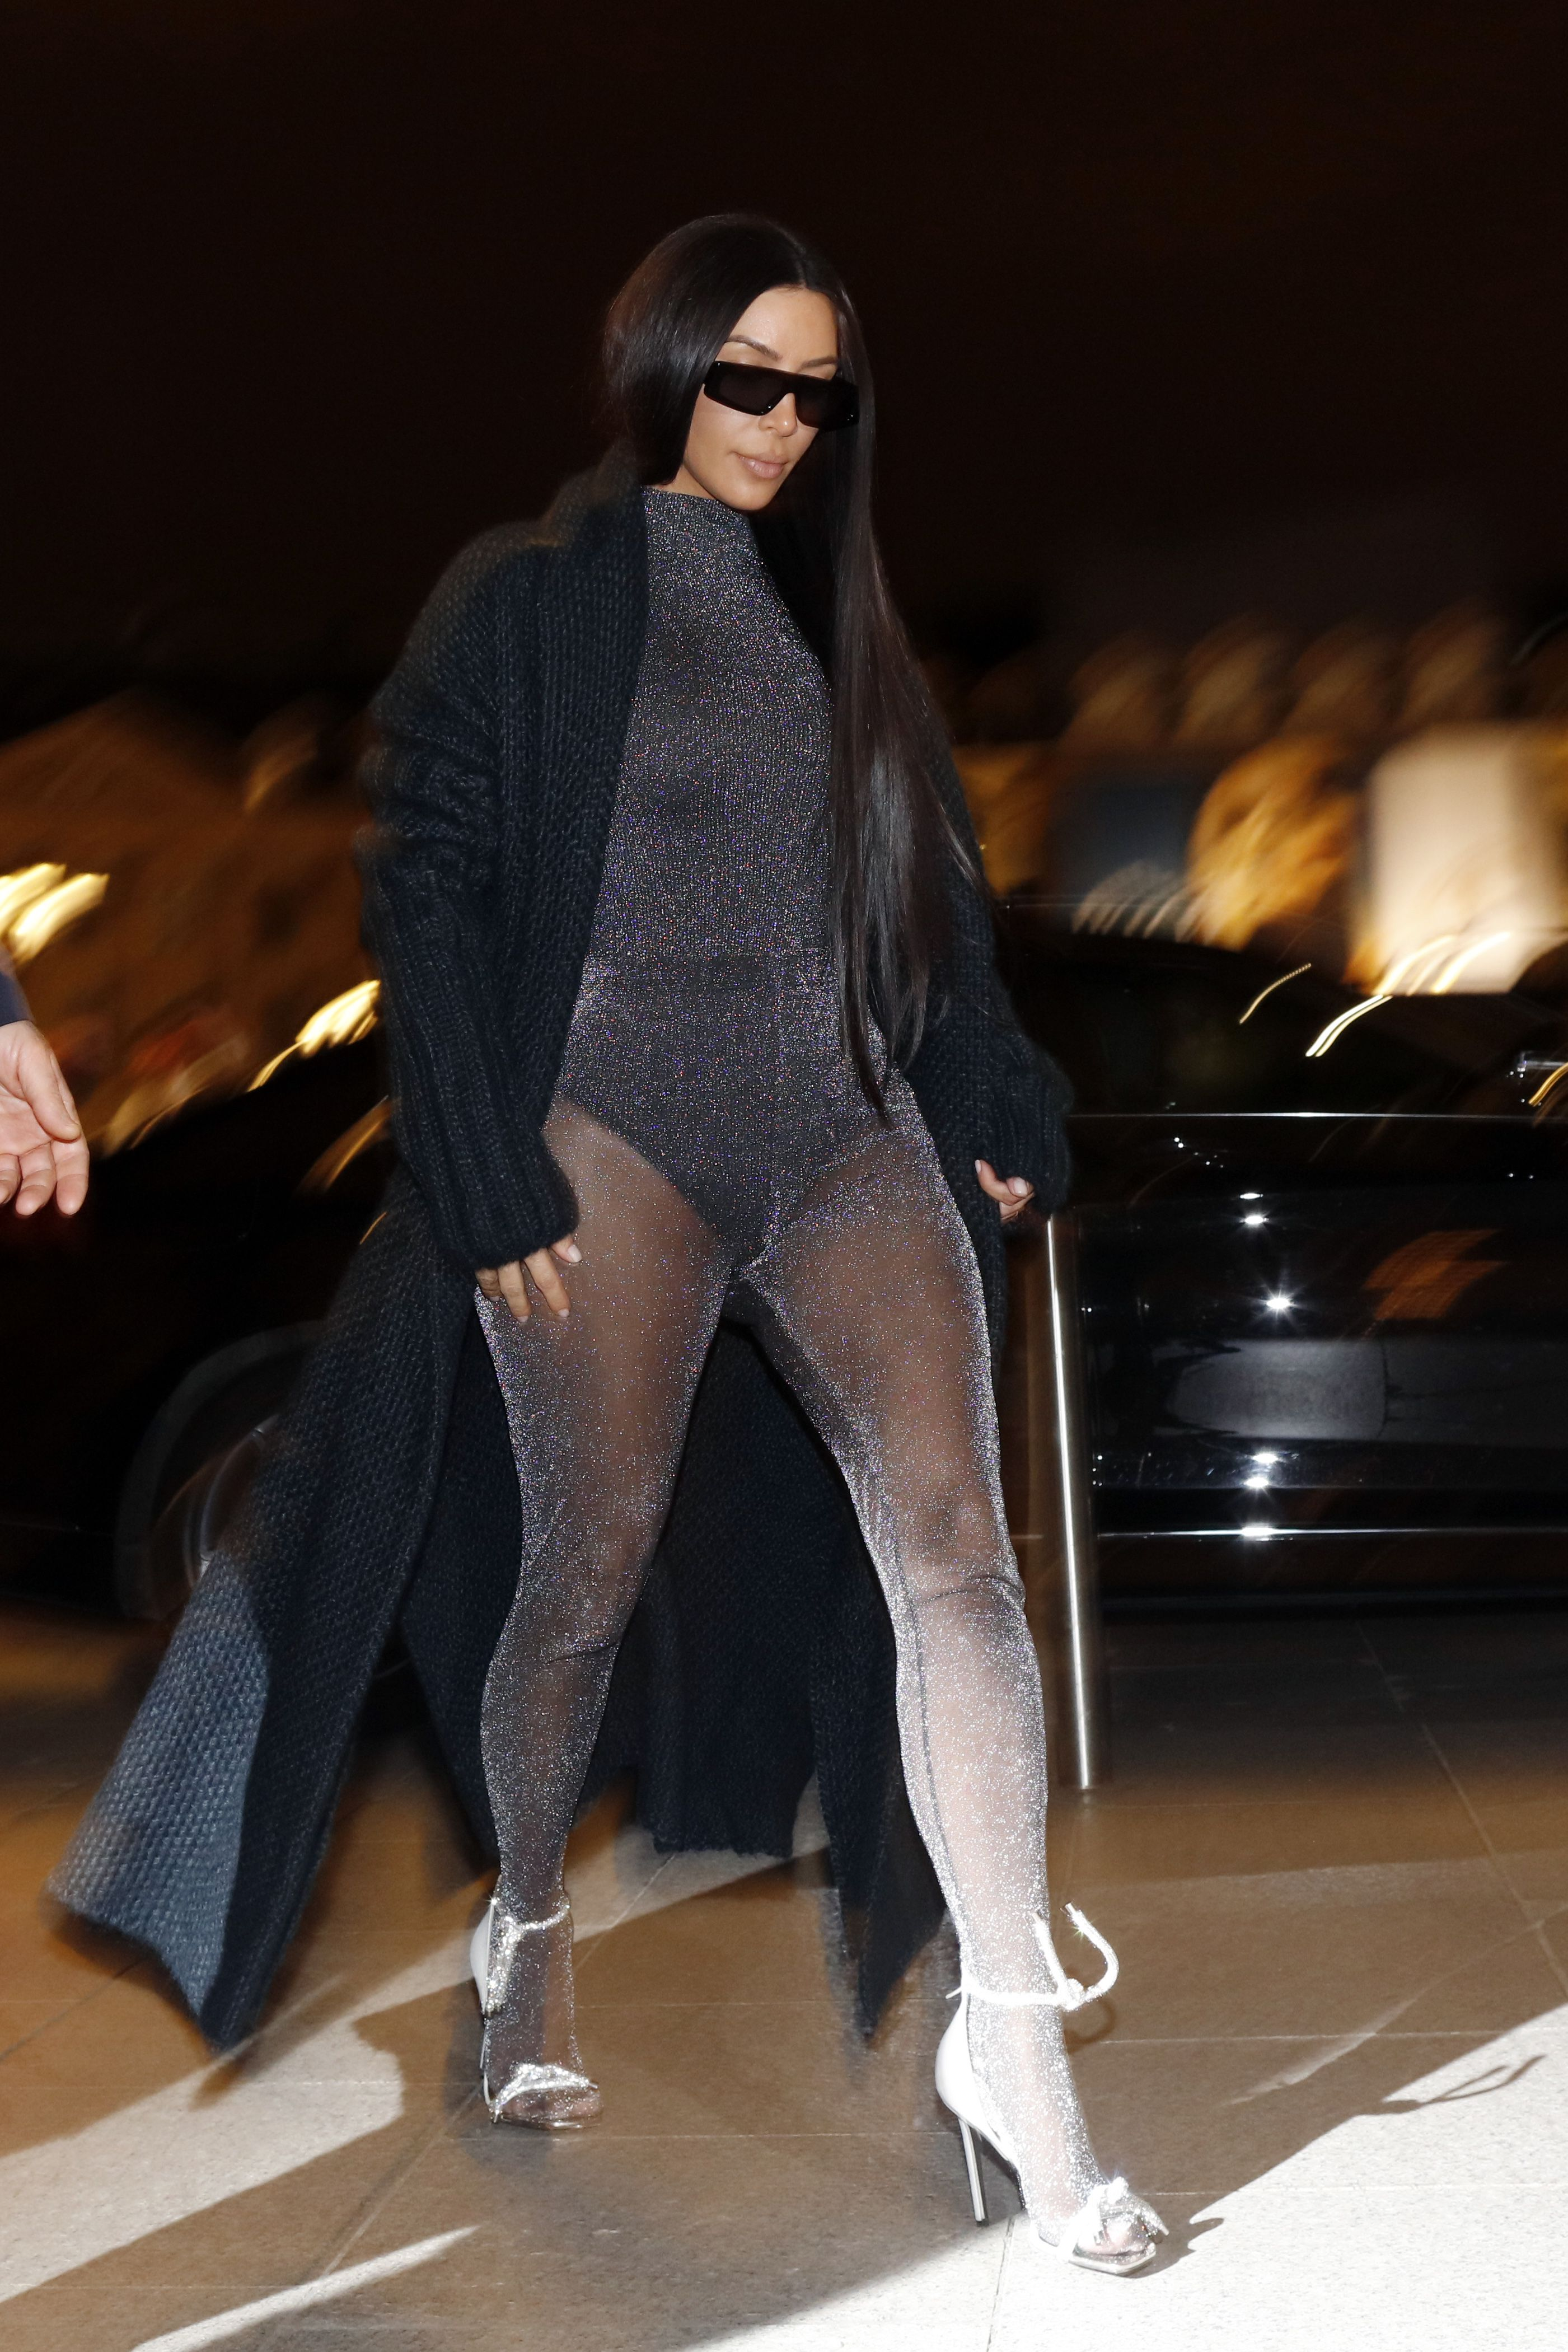 Kim Kardashian West Just Wore A Sparkly Transparent Unitard In Paris